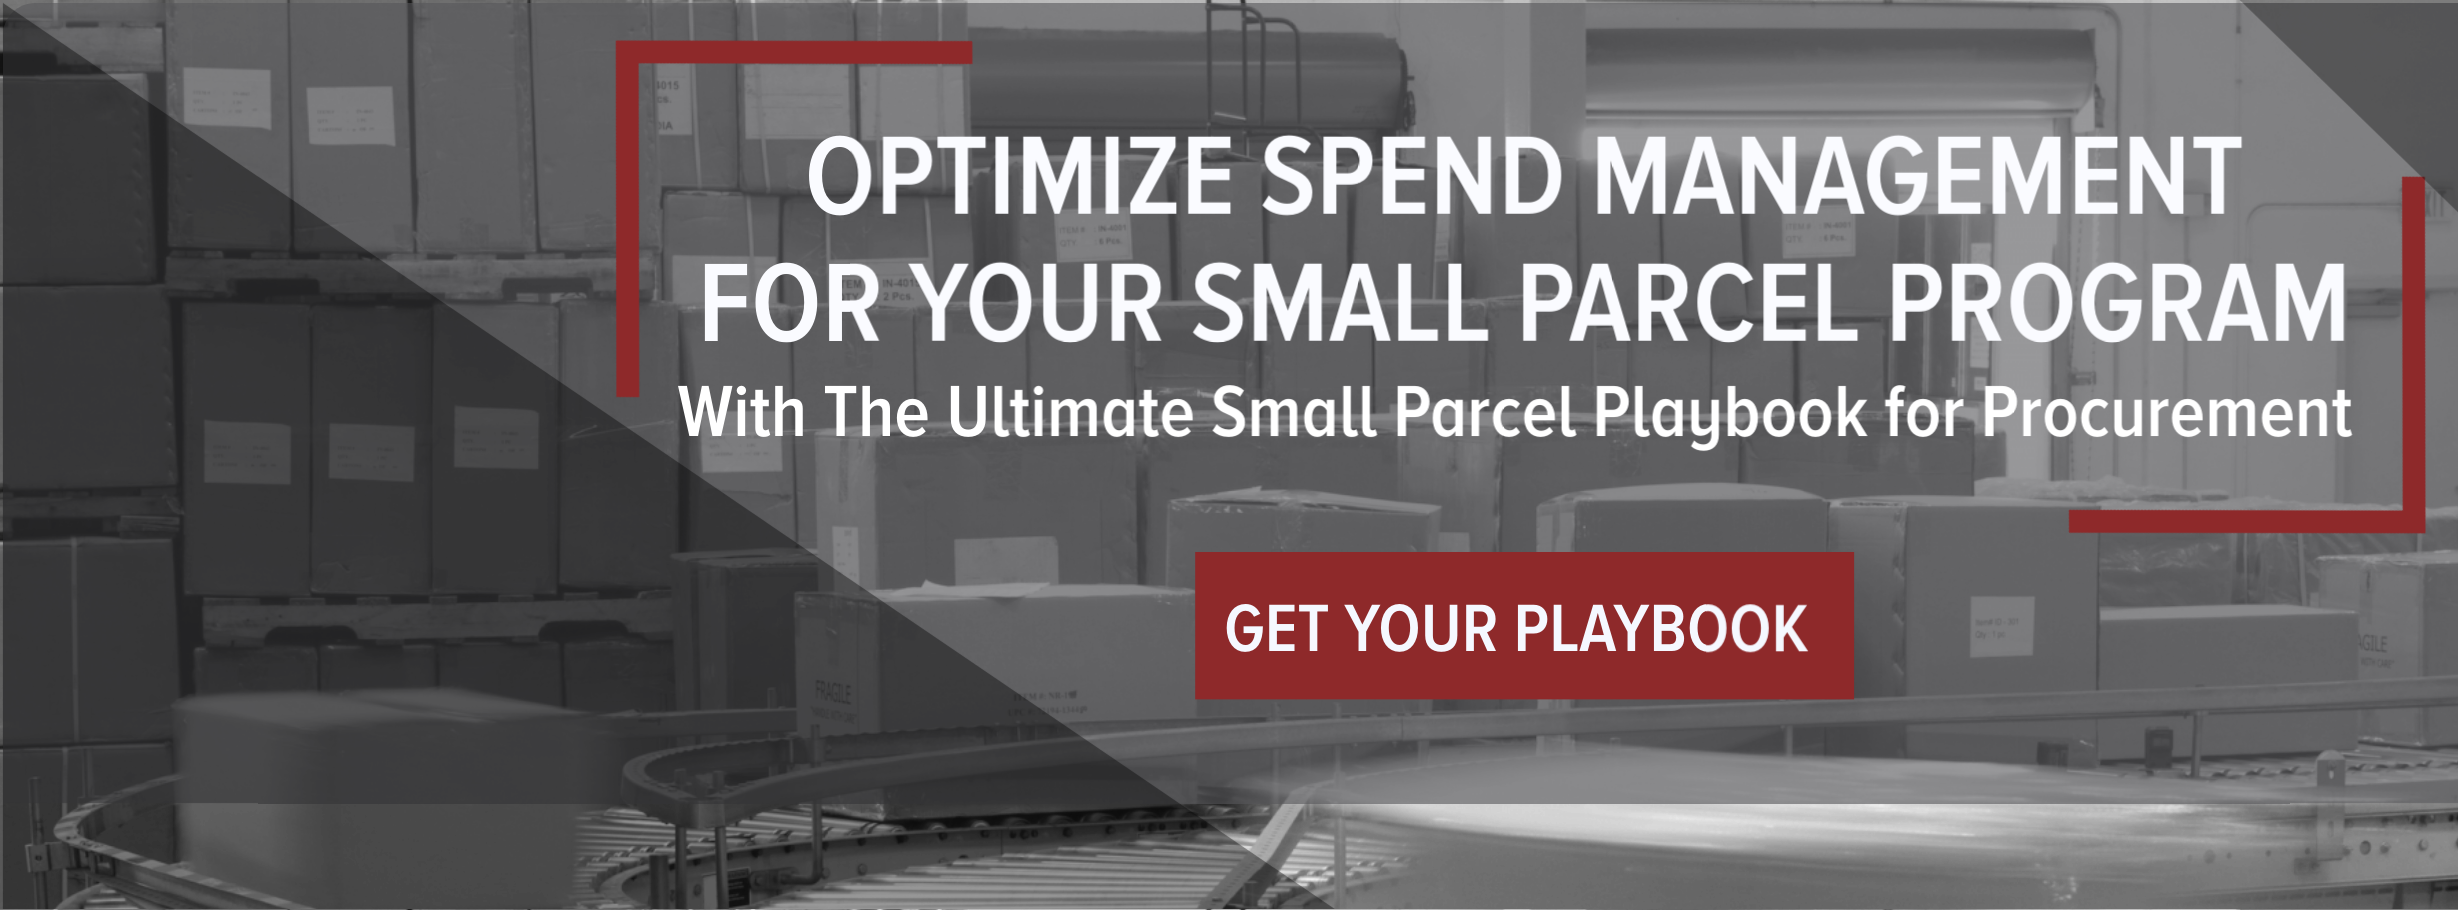 Optimize Your Small Parcel Spend Management